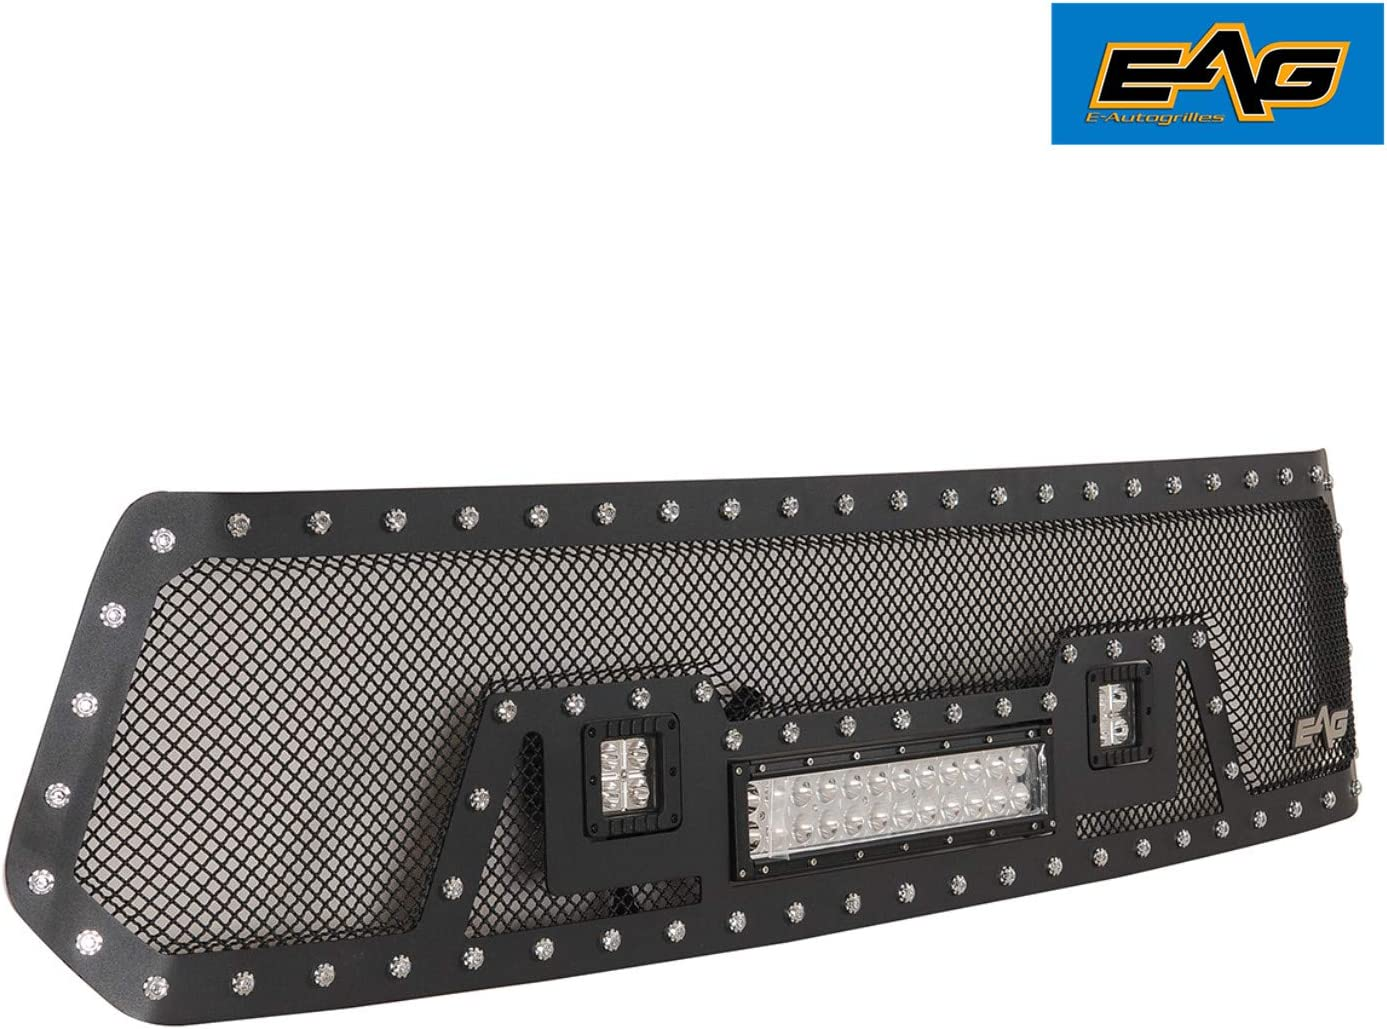 EAG Rivet Stainless Steel Wire Mesh Grille With LED Lights Fit for 14-18 Toyota Tundra